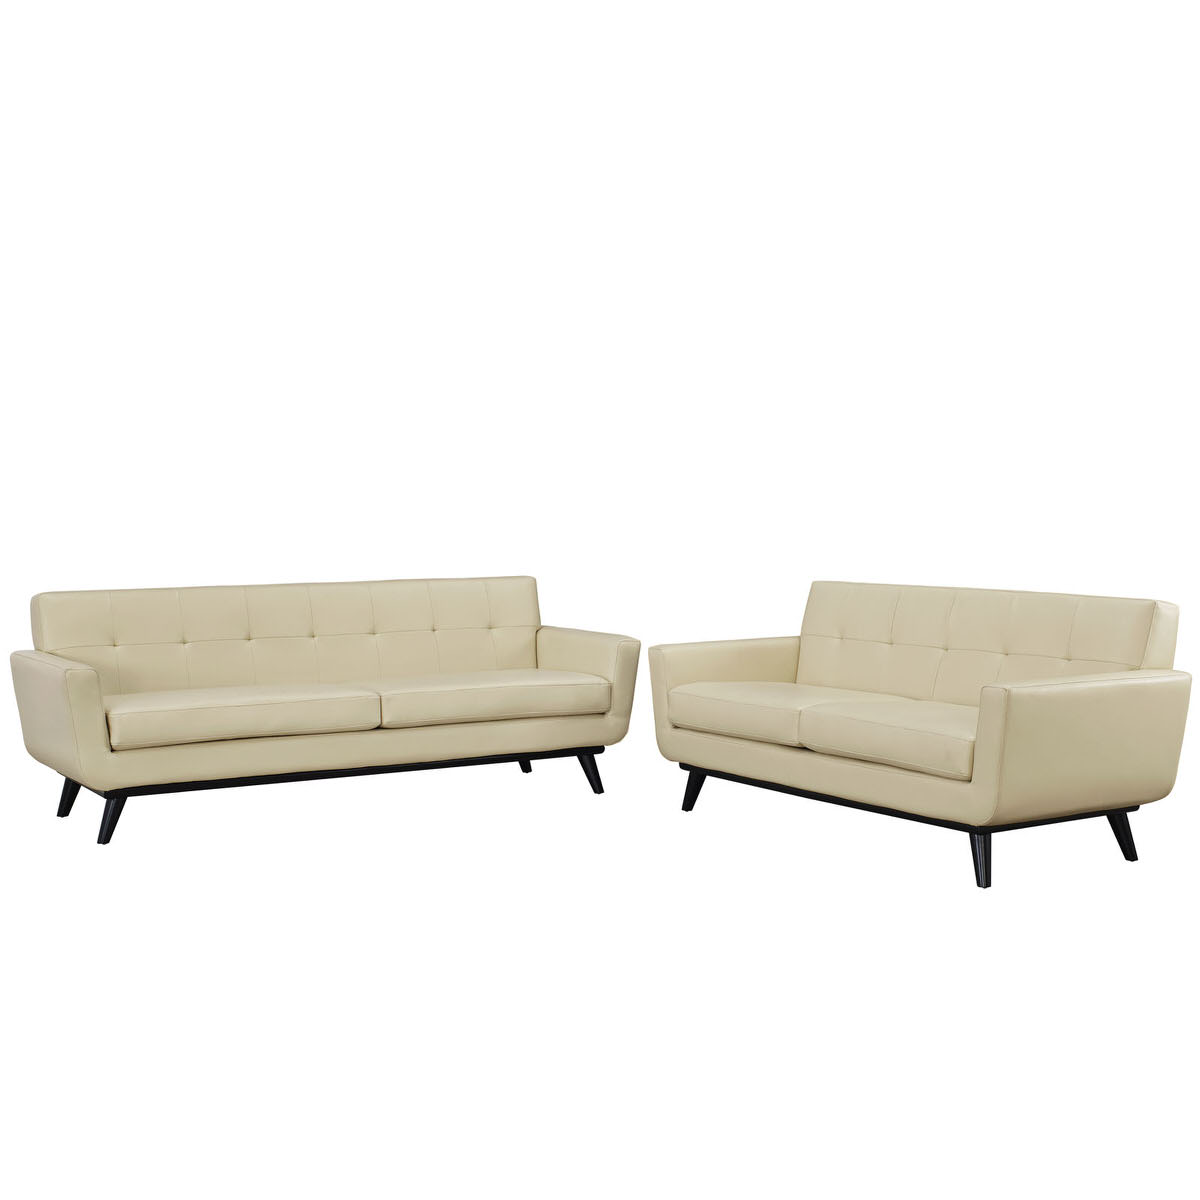 Engage 2 Piece Leather Living Room Set Beige by Modern Living